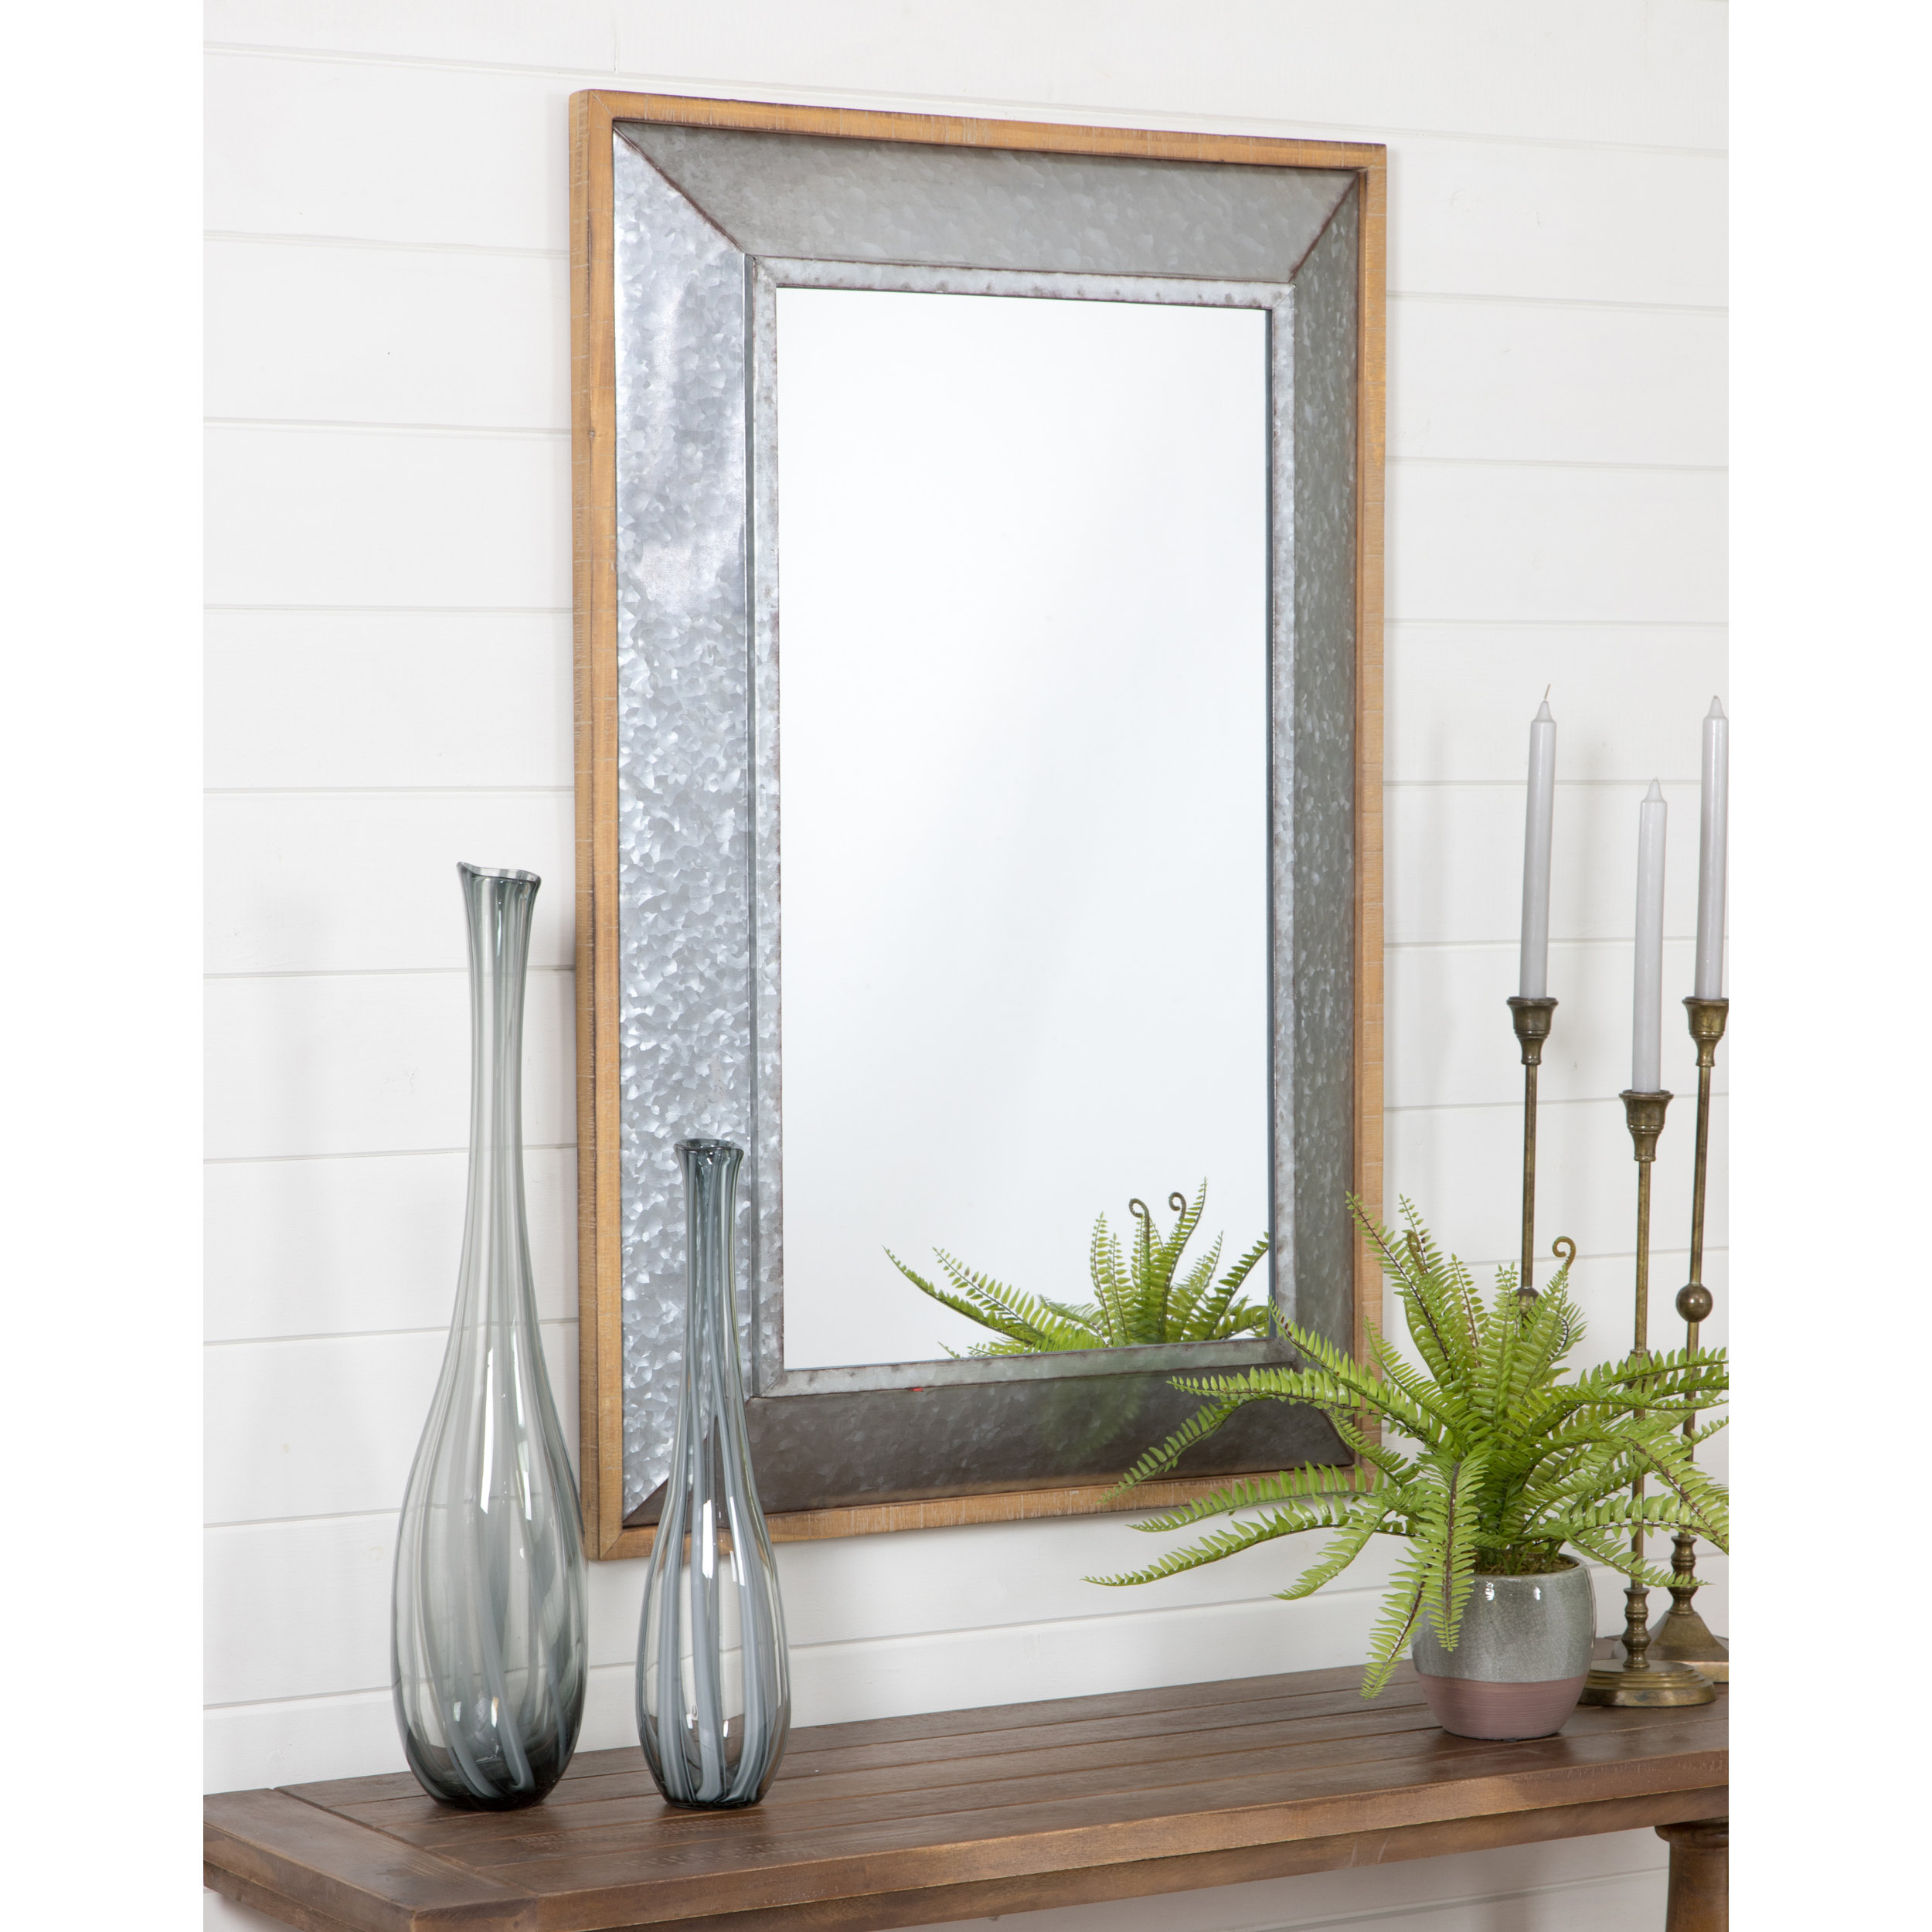 Dillinger Farmhouse Wall Mirror Within Epinal Shabby Elegance Wall Mirrors (View 15 of 20)